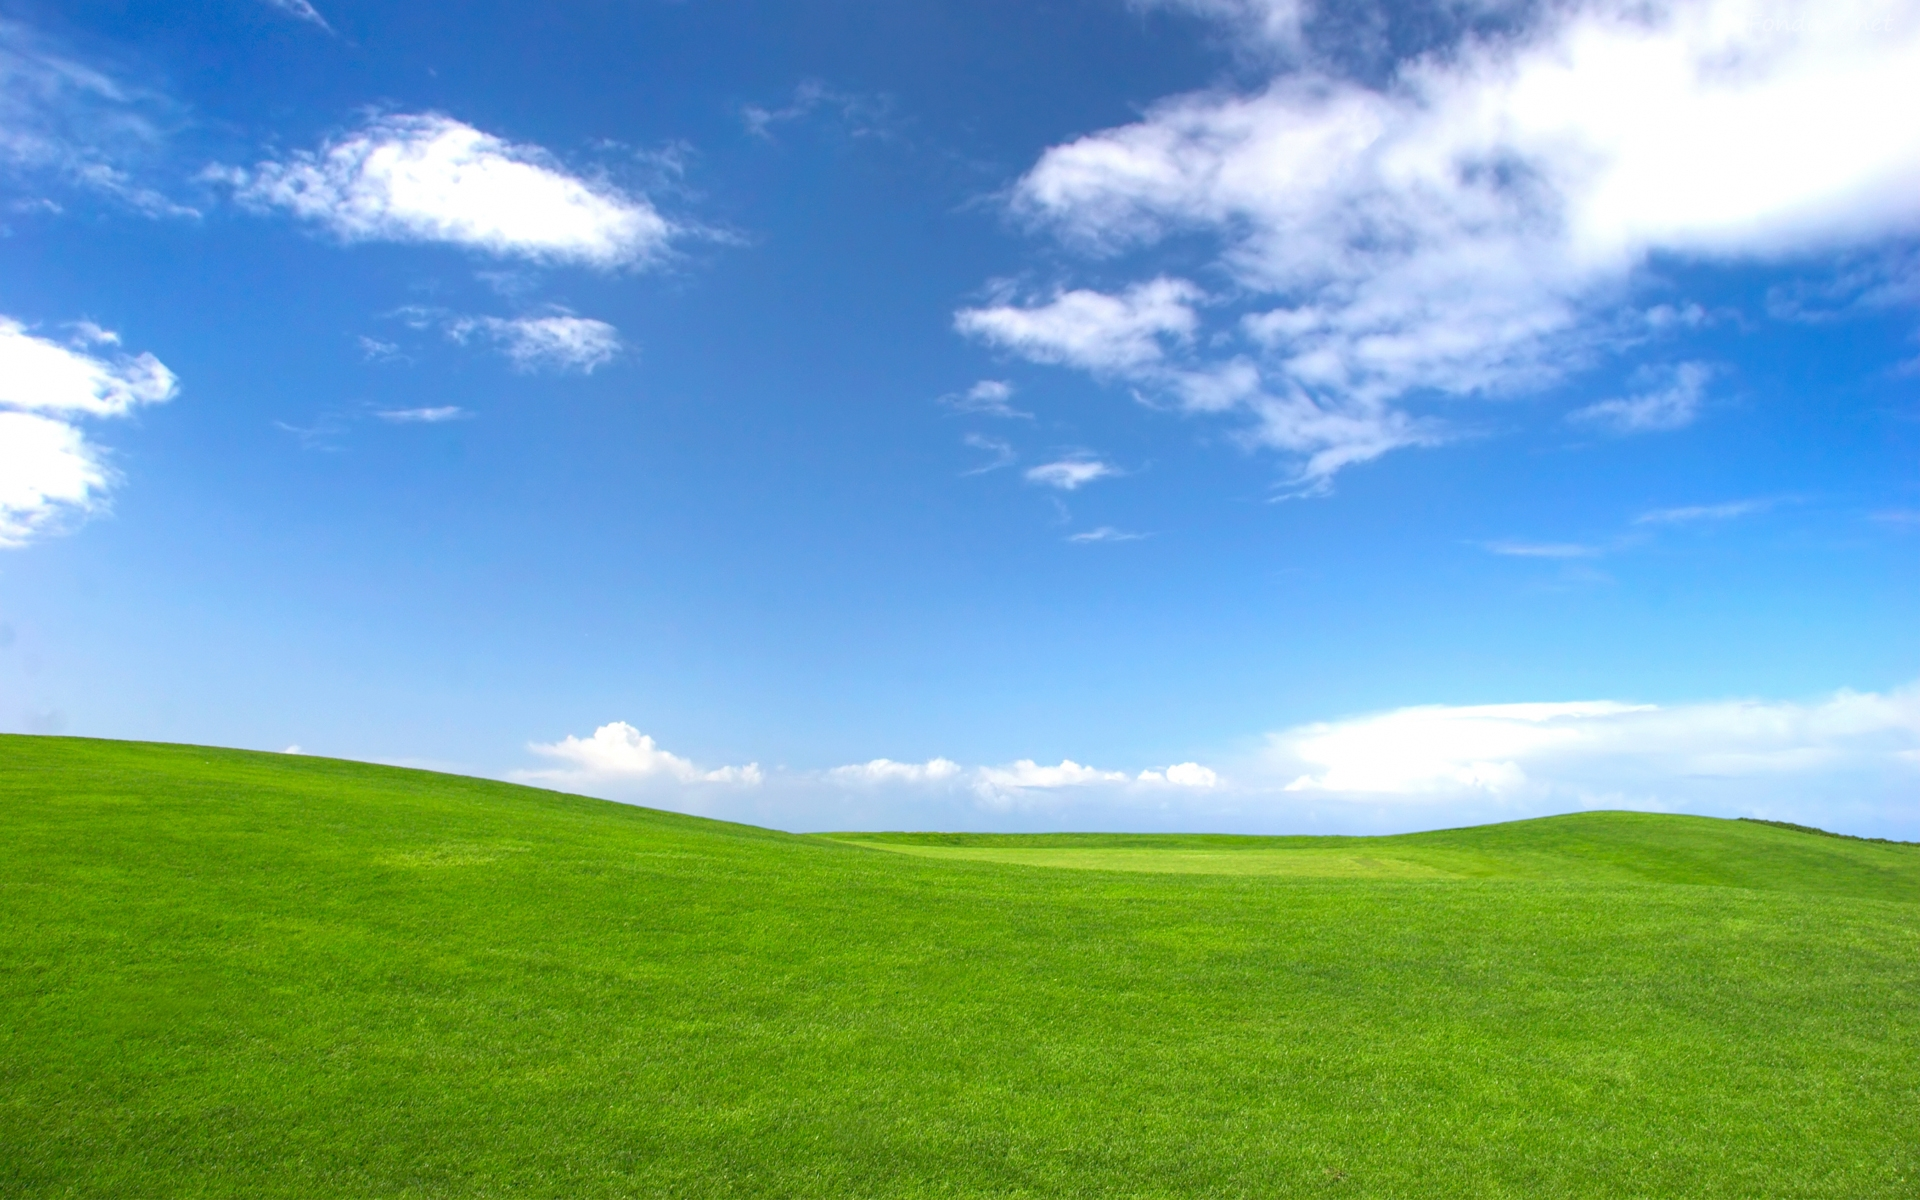 Classic Windows Desktop Wallpaper - WallpaperSafari Windows 7 Classic Wallpaper